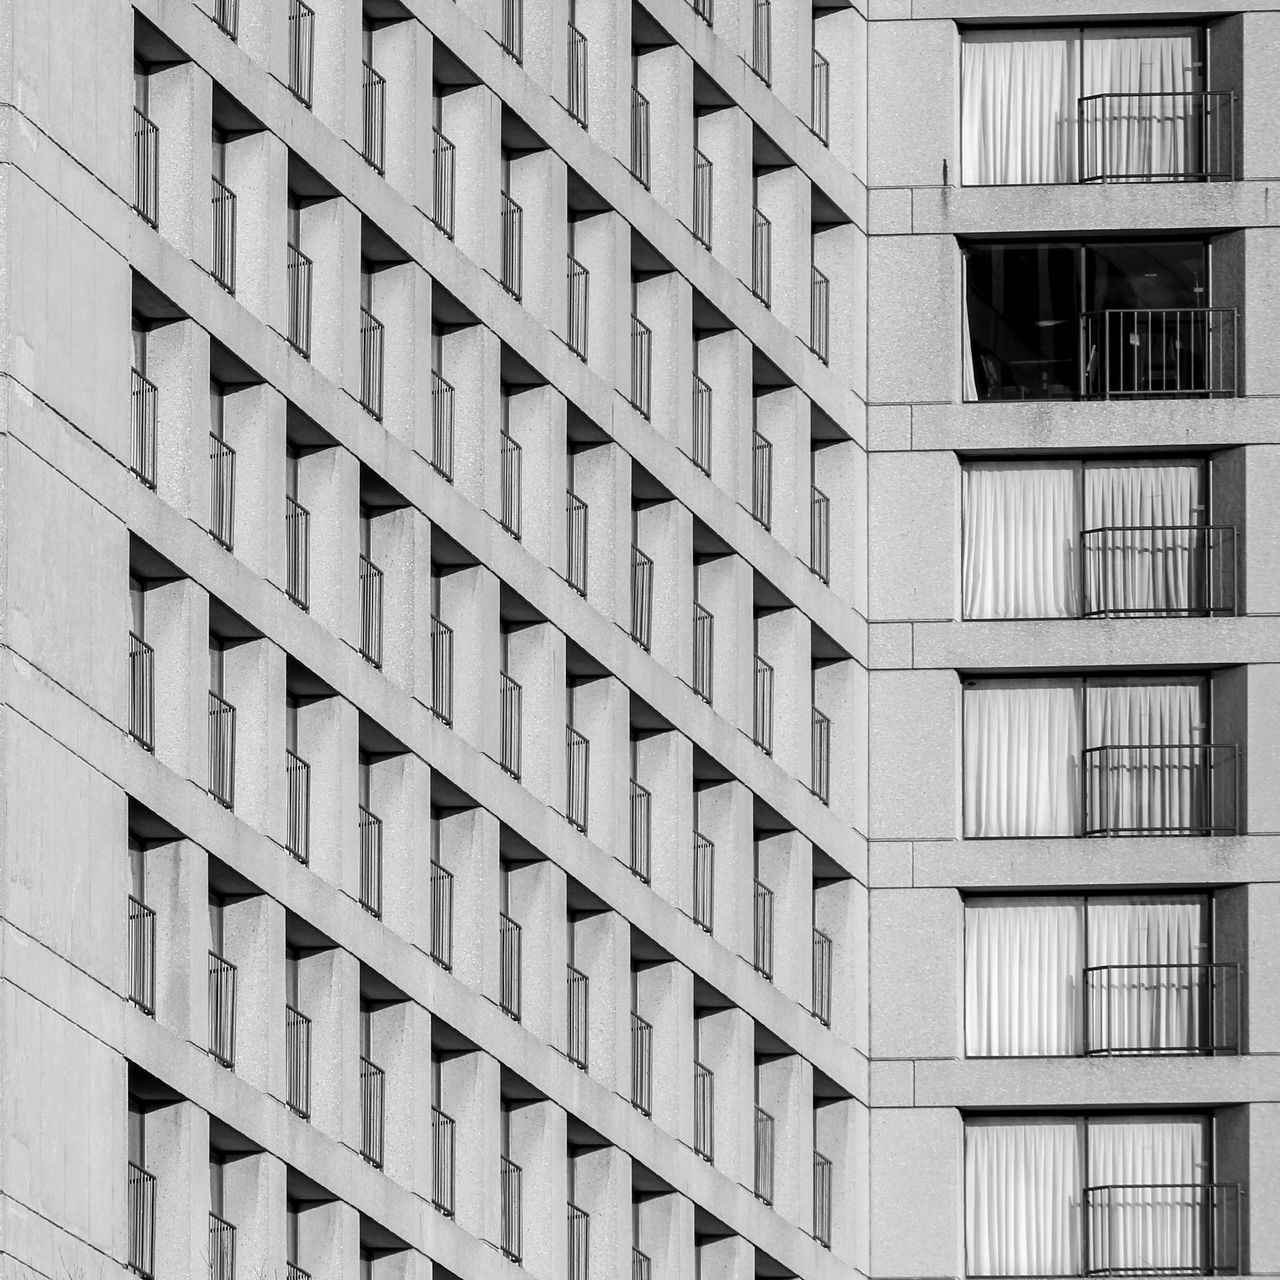 Architecture Backgrounds Balcony Blackandwhite Building Exterior Built Structure City Composition Day Minimalism No People Outdoors Pattern Repetition